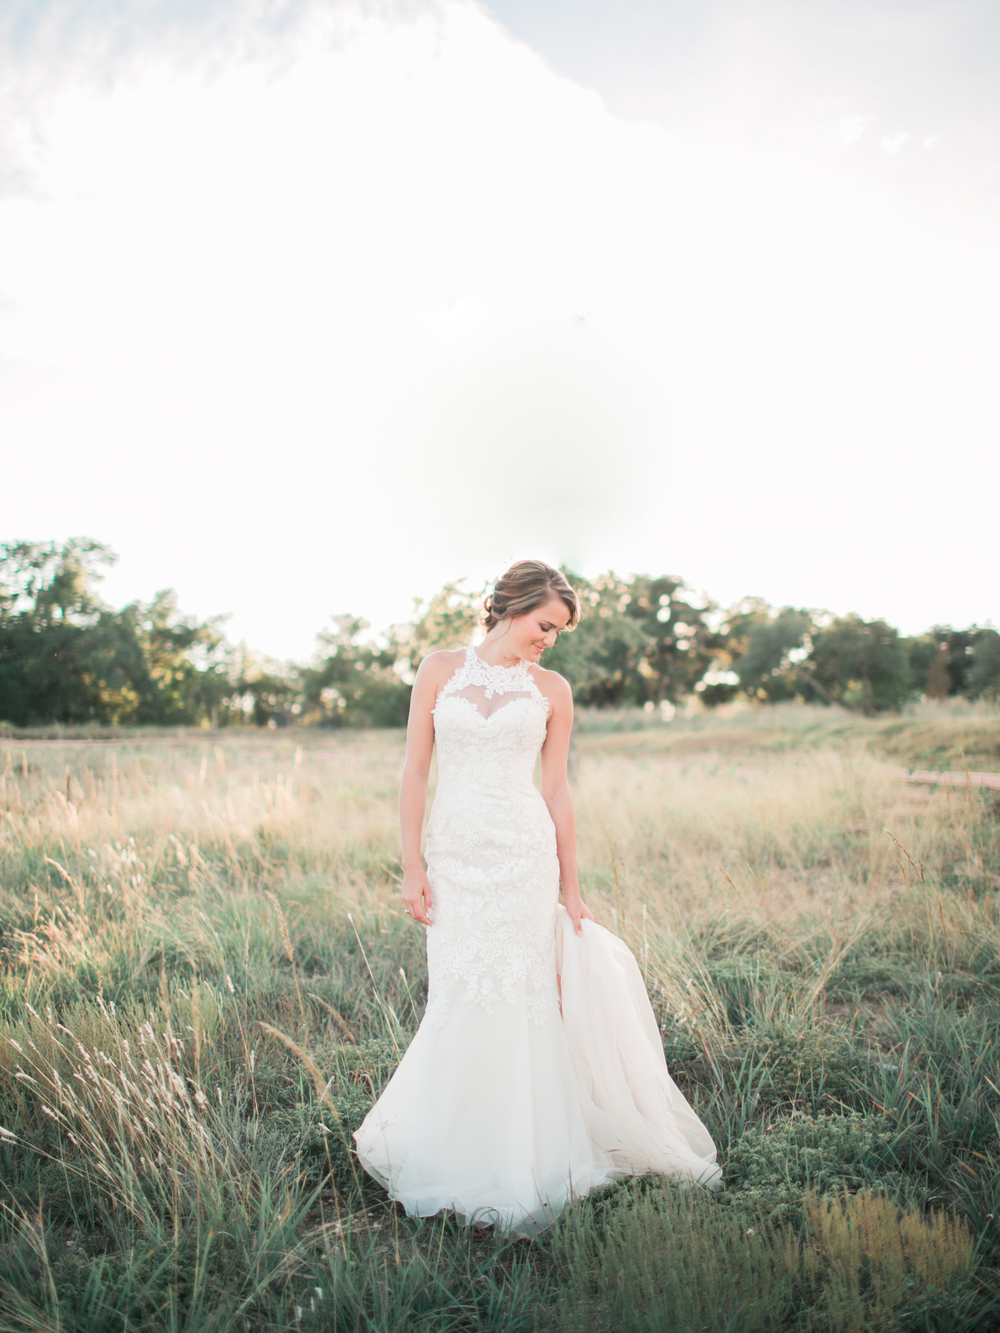 Austin-Bridal-Photographer-Alexa-Prospect-House-1.jpg